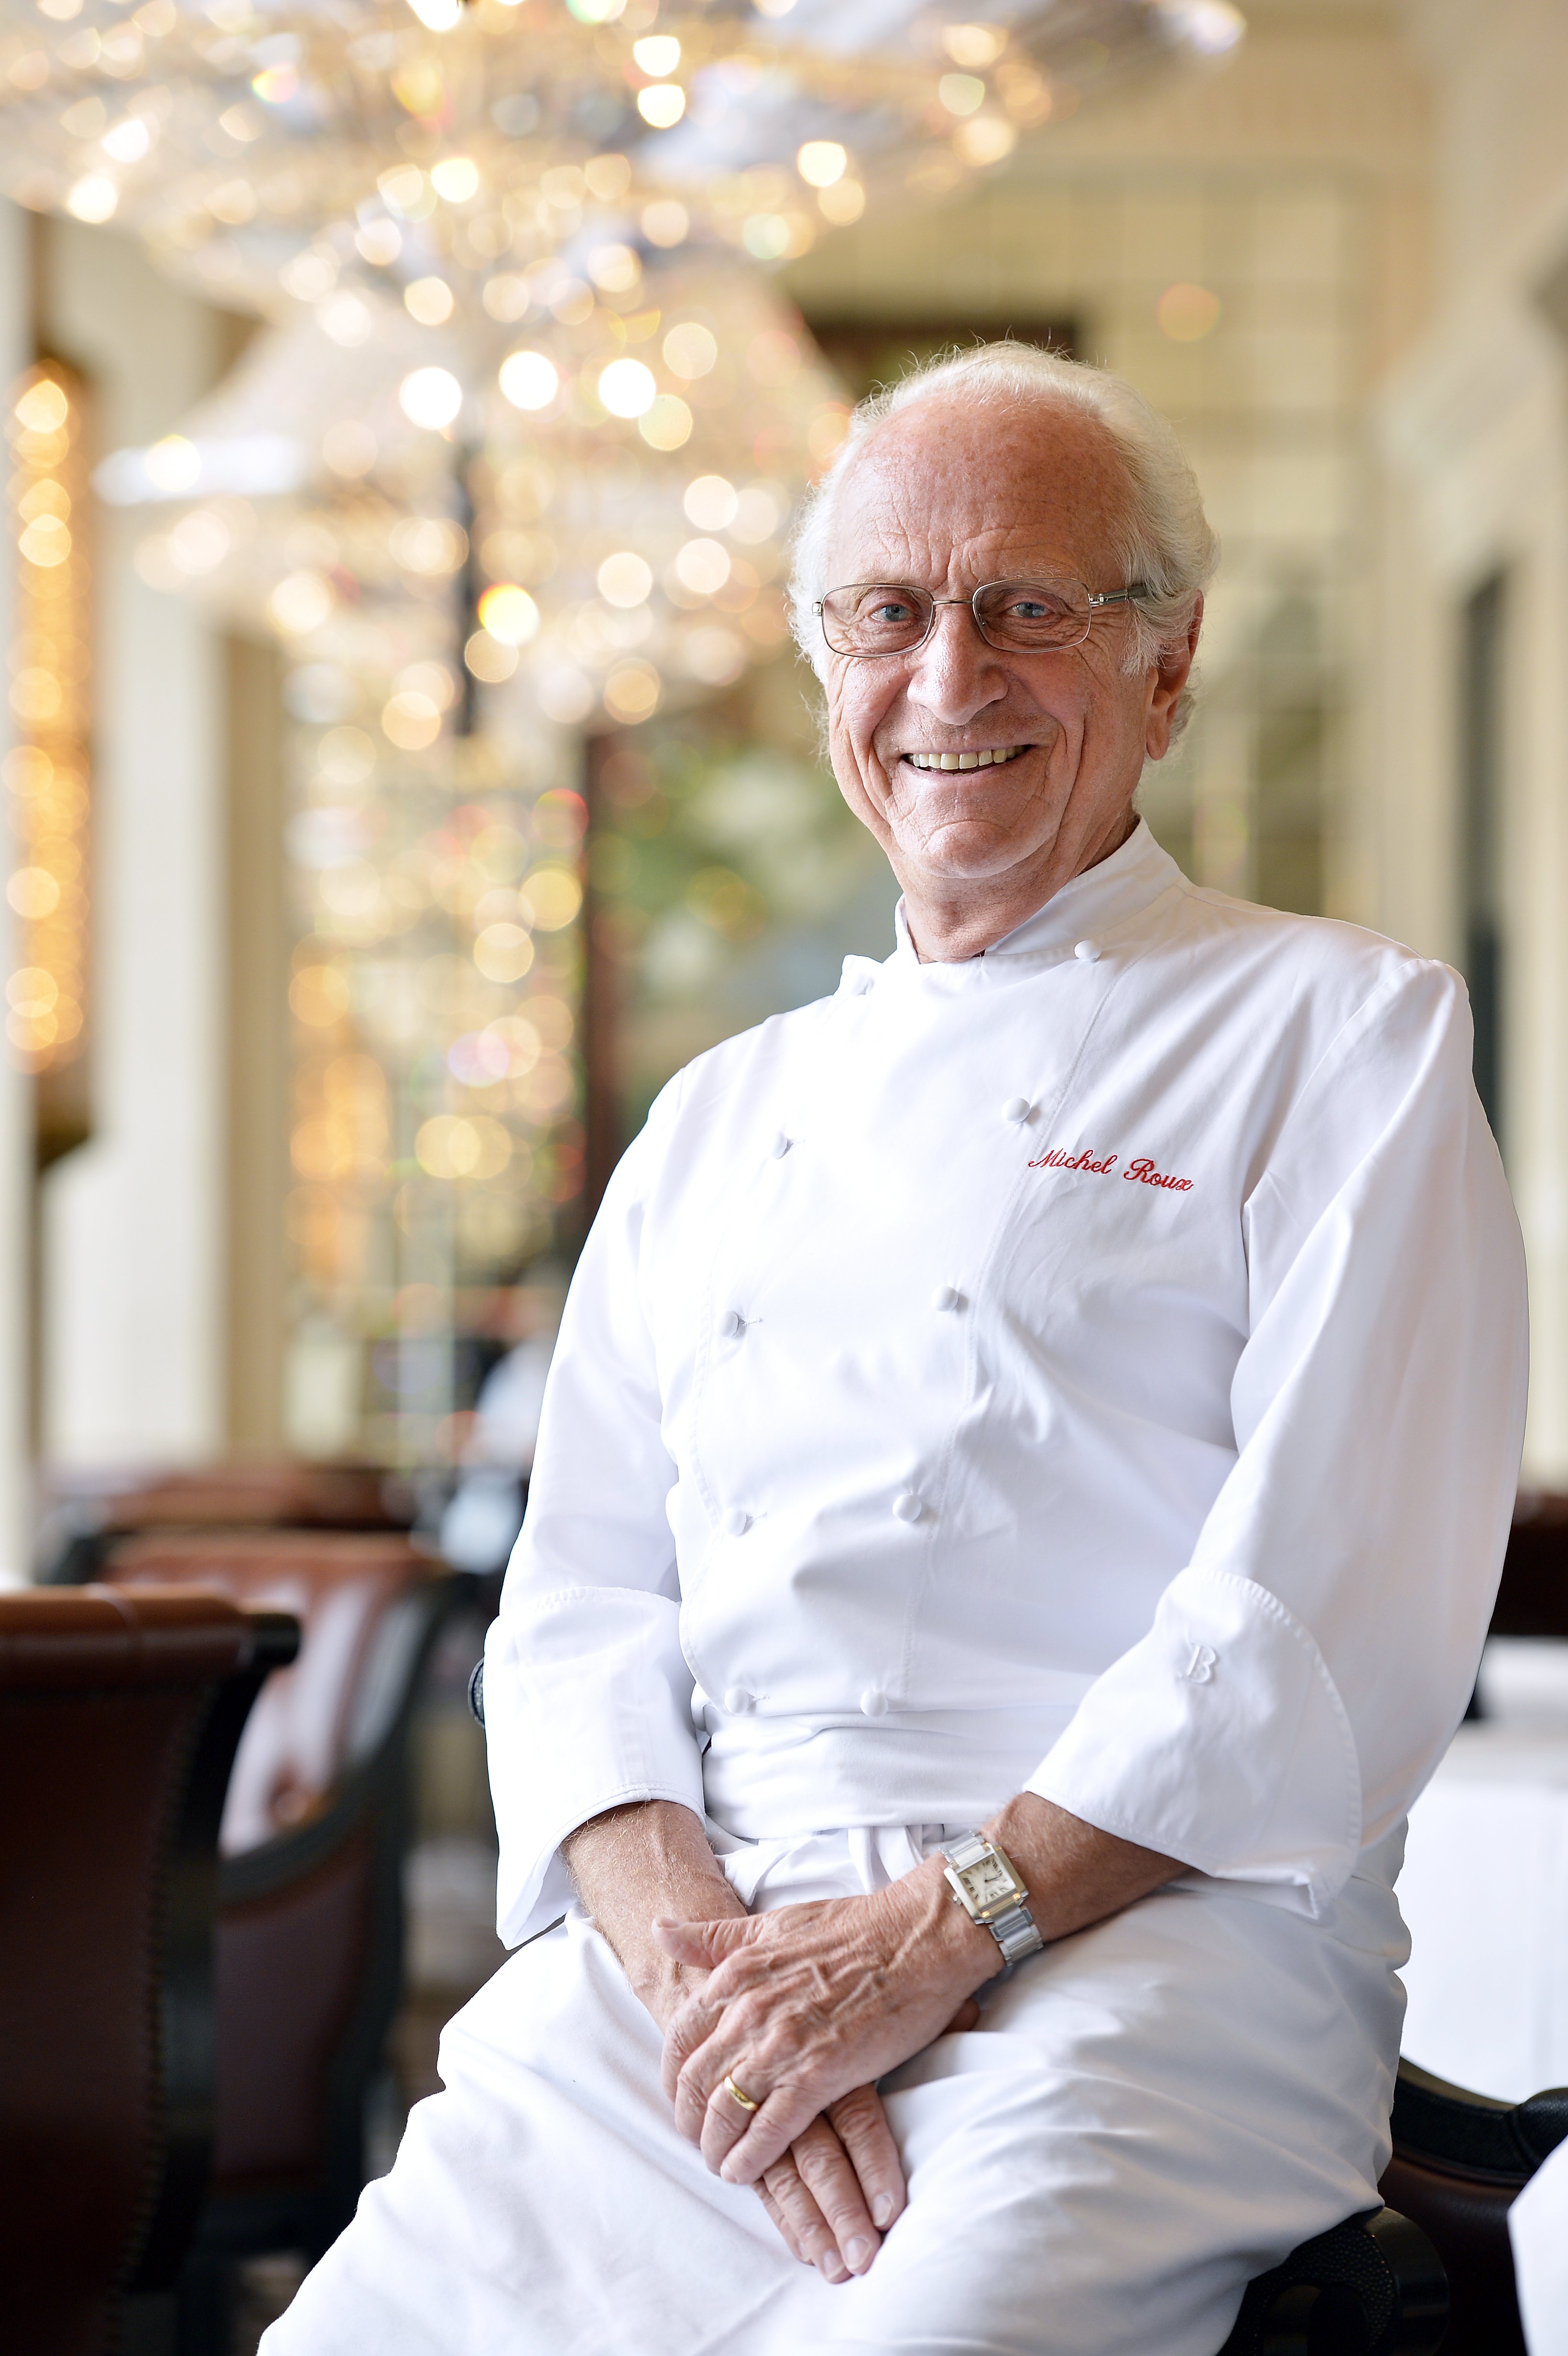 Chef Michel Roux, who has died at 79